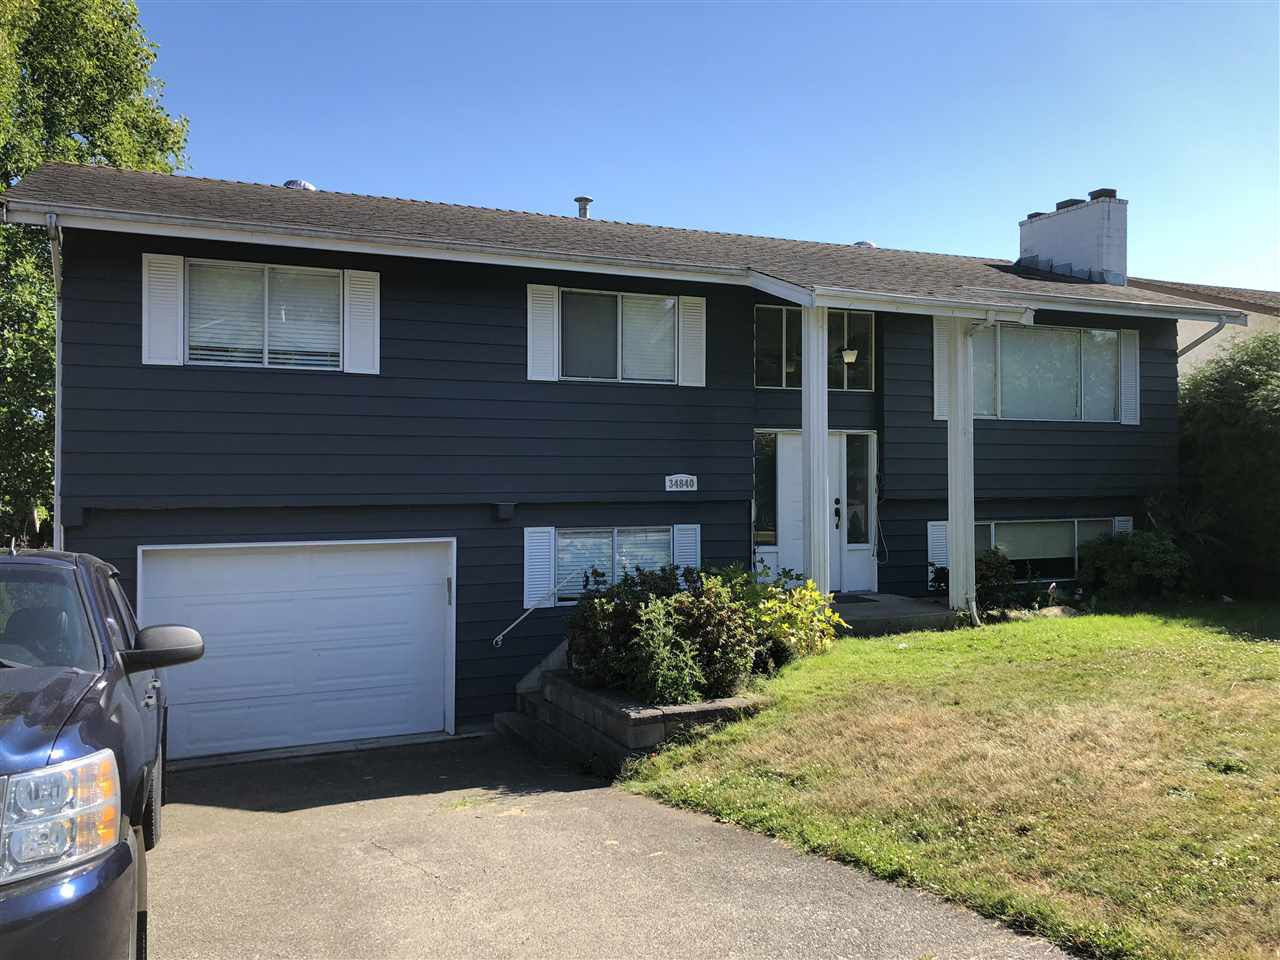 Main Photo: 34840 MCLEOD Avenue in Abbotsford: Abbotsford East House for sale : MLS®# R2285551